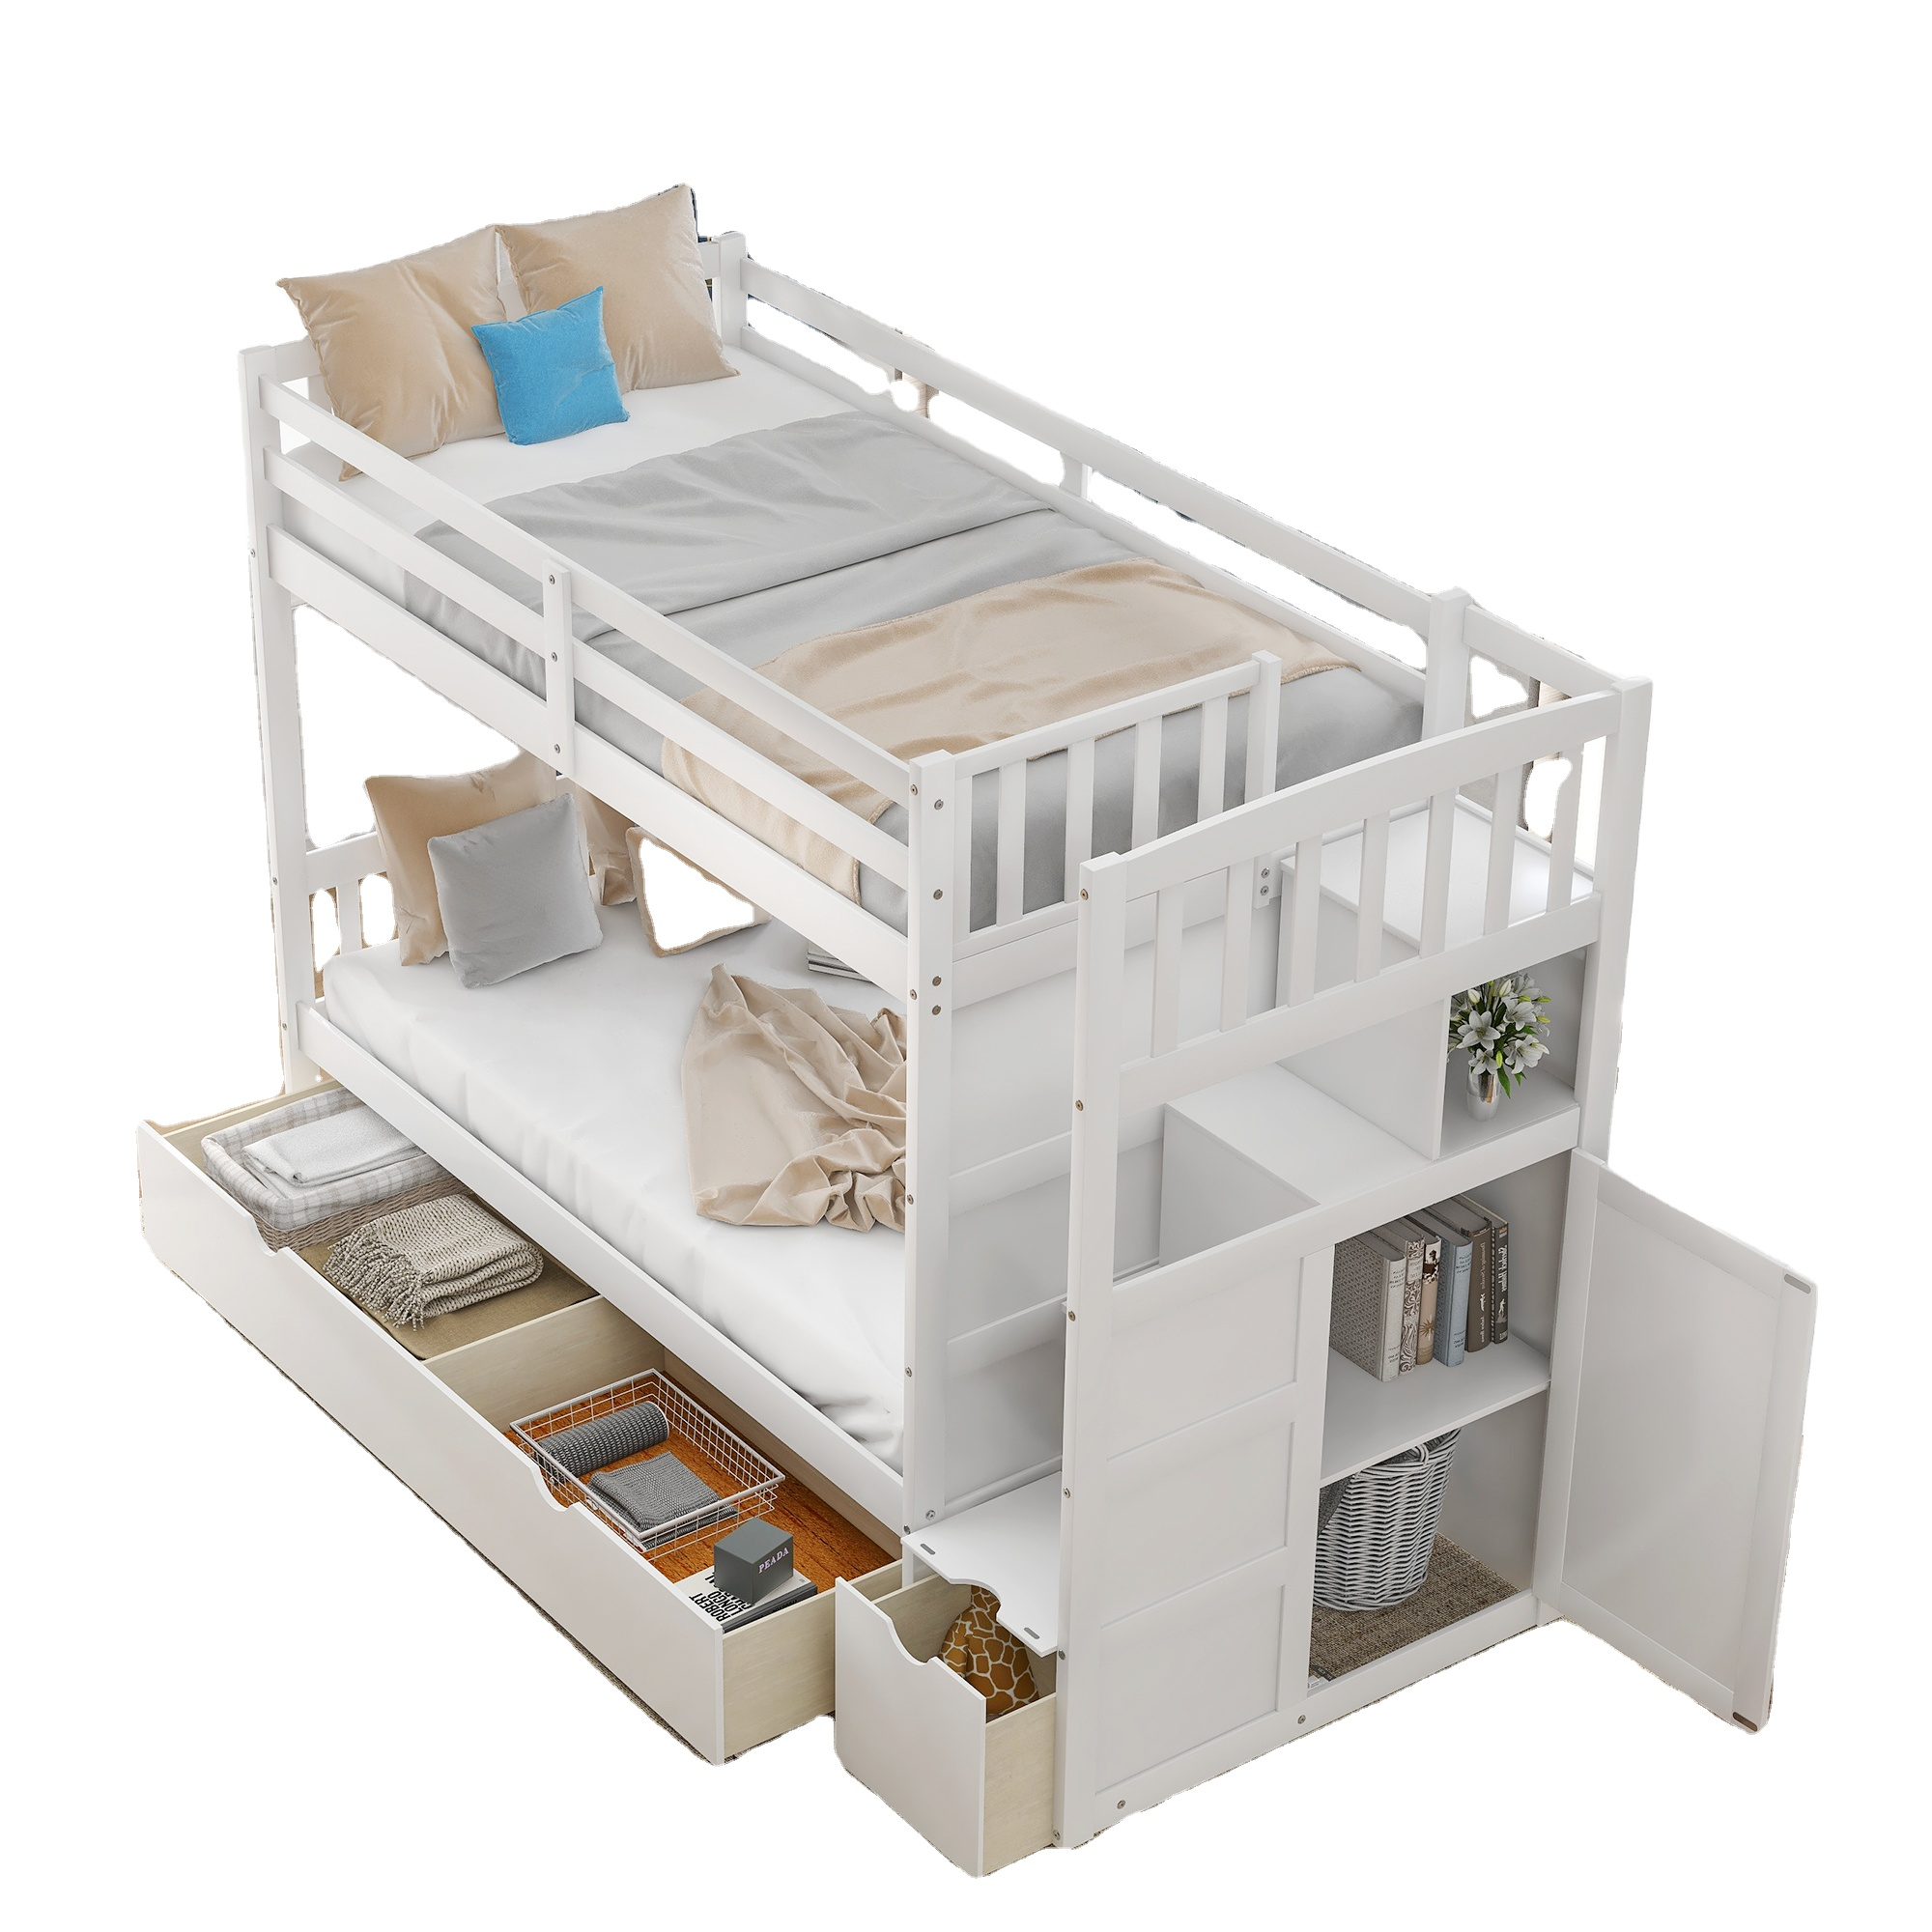 Usa Free Shipping Single Bunk Bed Office Manufacturer Children Princess Bunk Bed With Stairs Buy Princess Bunk Bed Bunk Bed With Stairs Children Bunk Bed Product On Alibaba Com